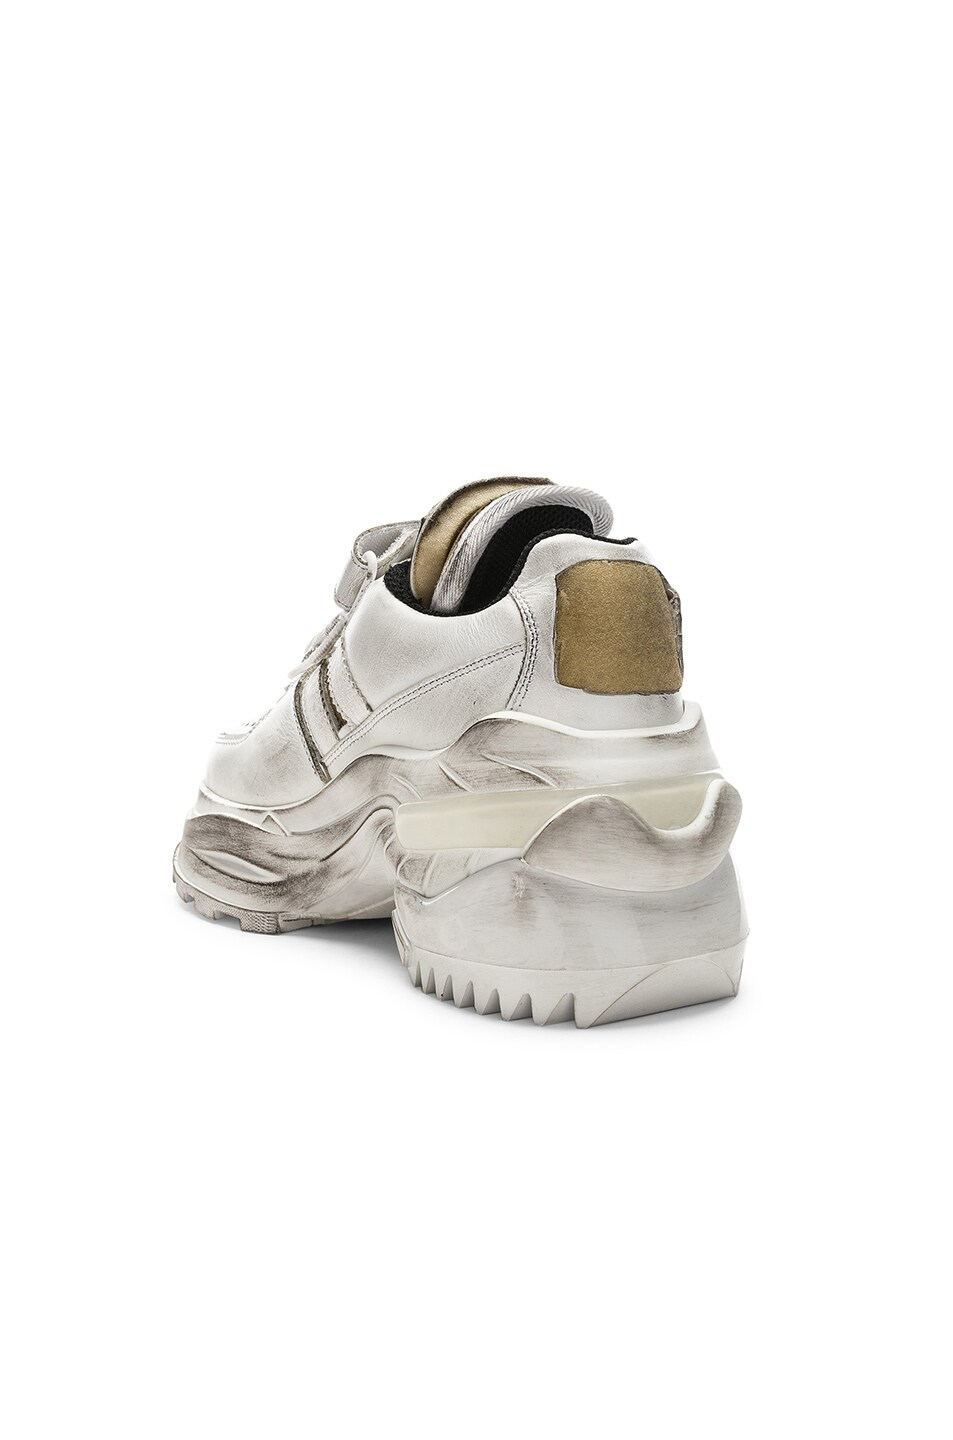 Image 3 of Maison Margiela Leather Sneakers in White & Black Raven